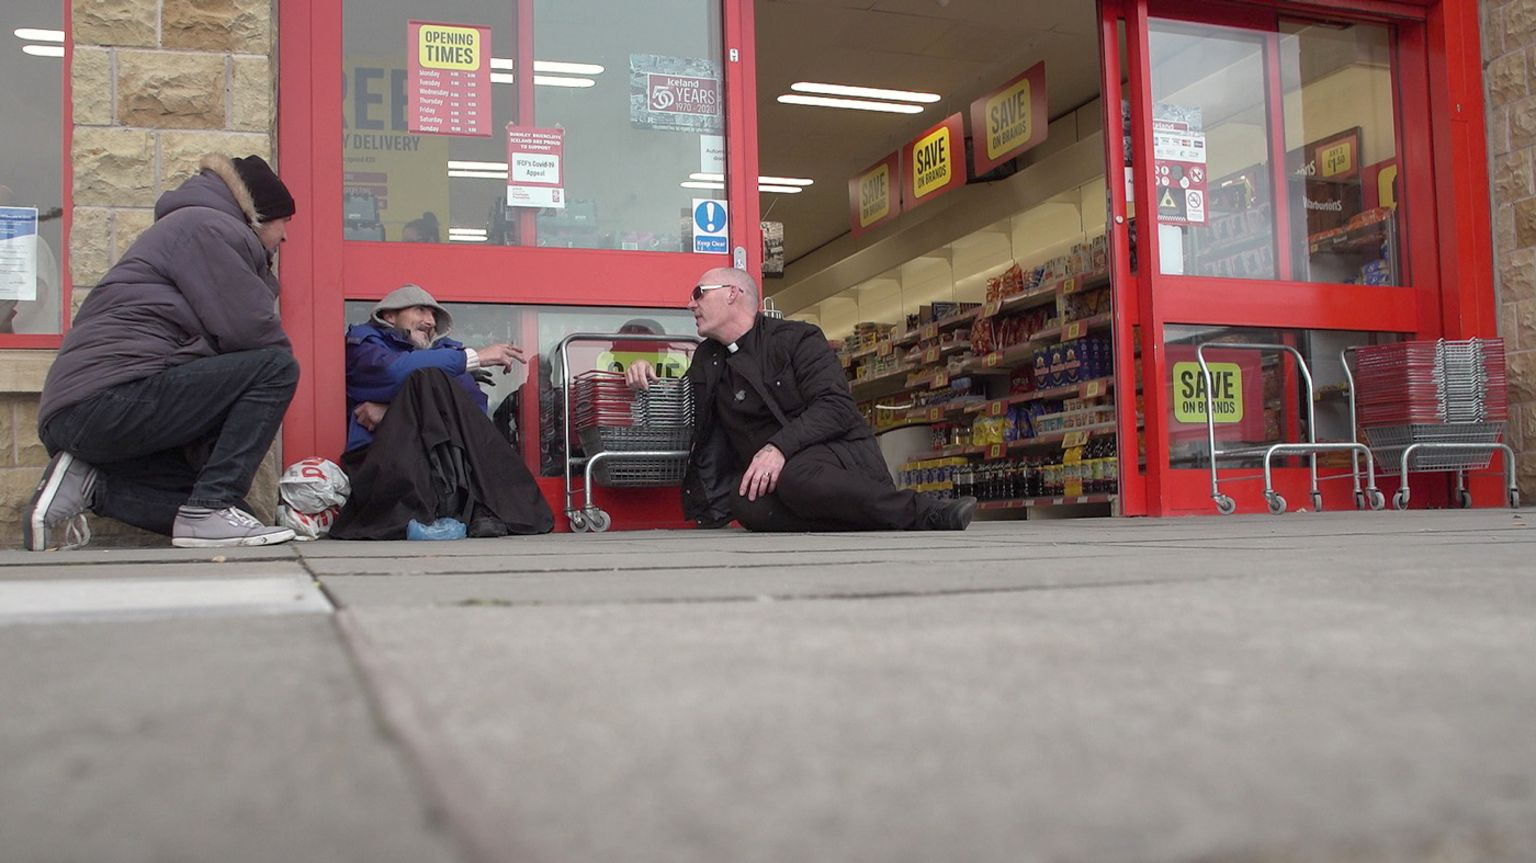 Pastor Mick Fleming talks to a man on the ground outside a shop